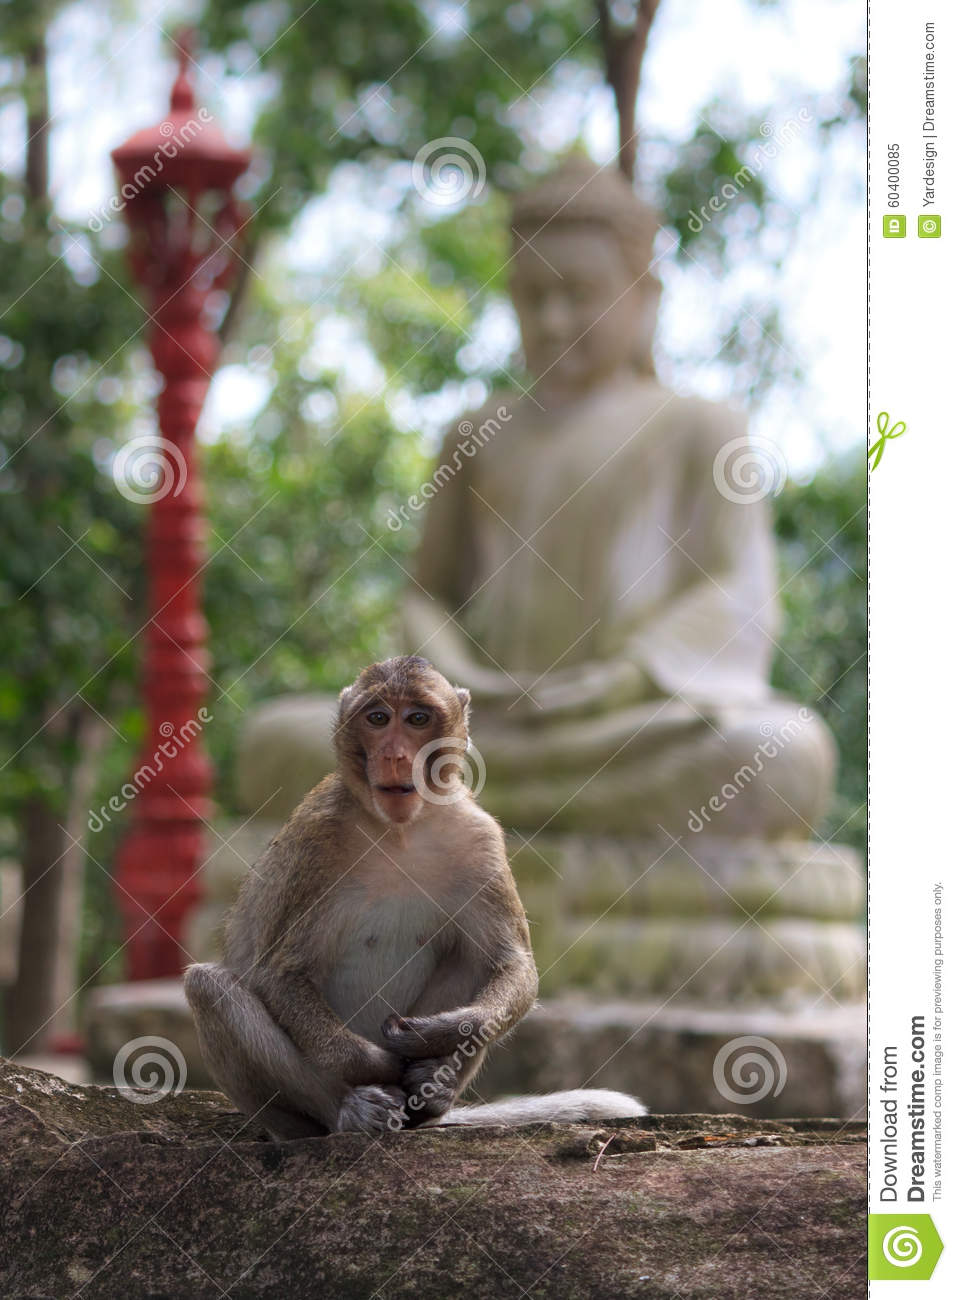 Monkey Sitting On Garden Stone With Statue Of Buddha At